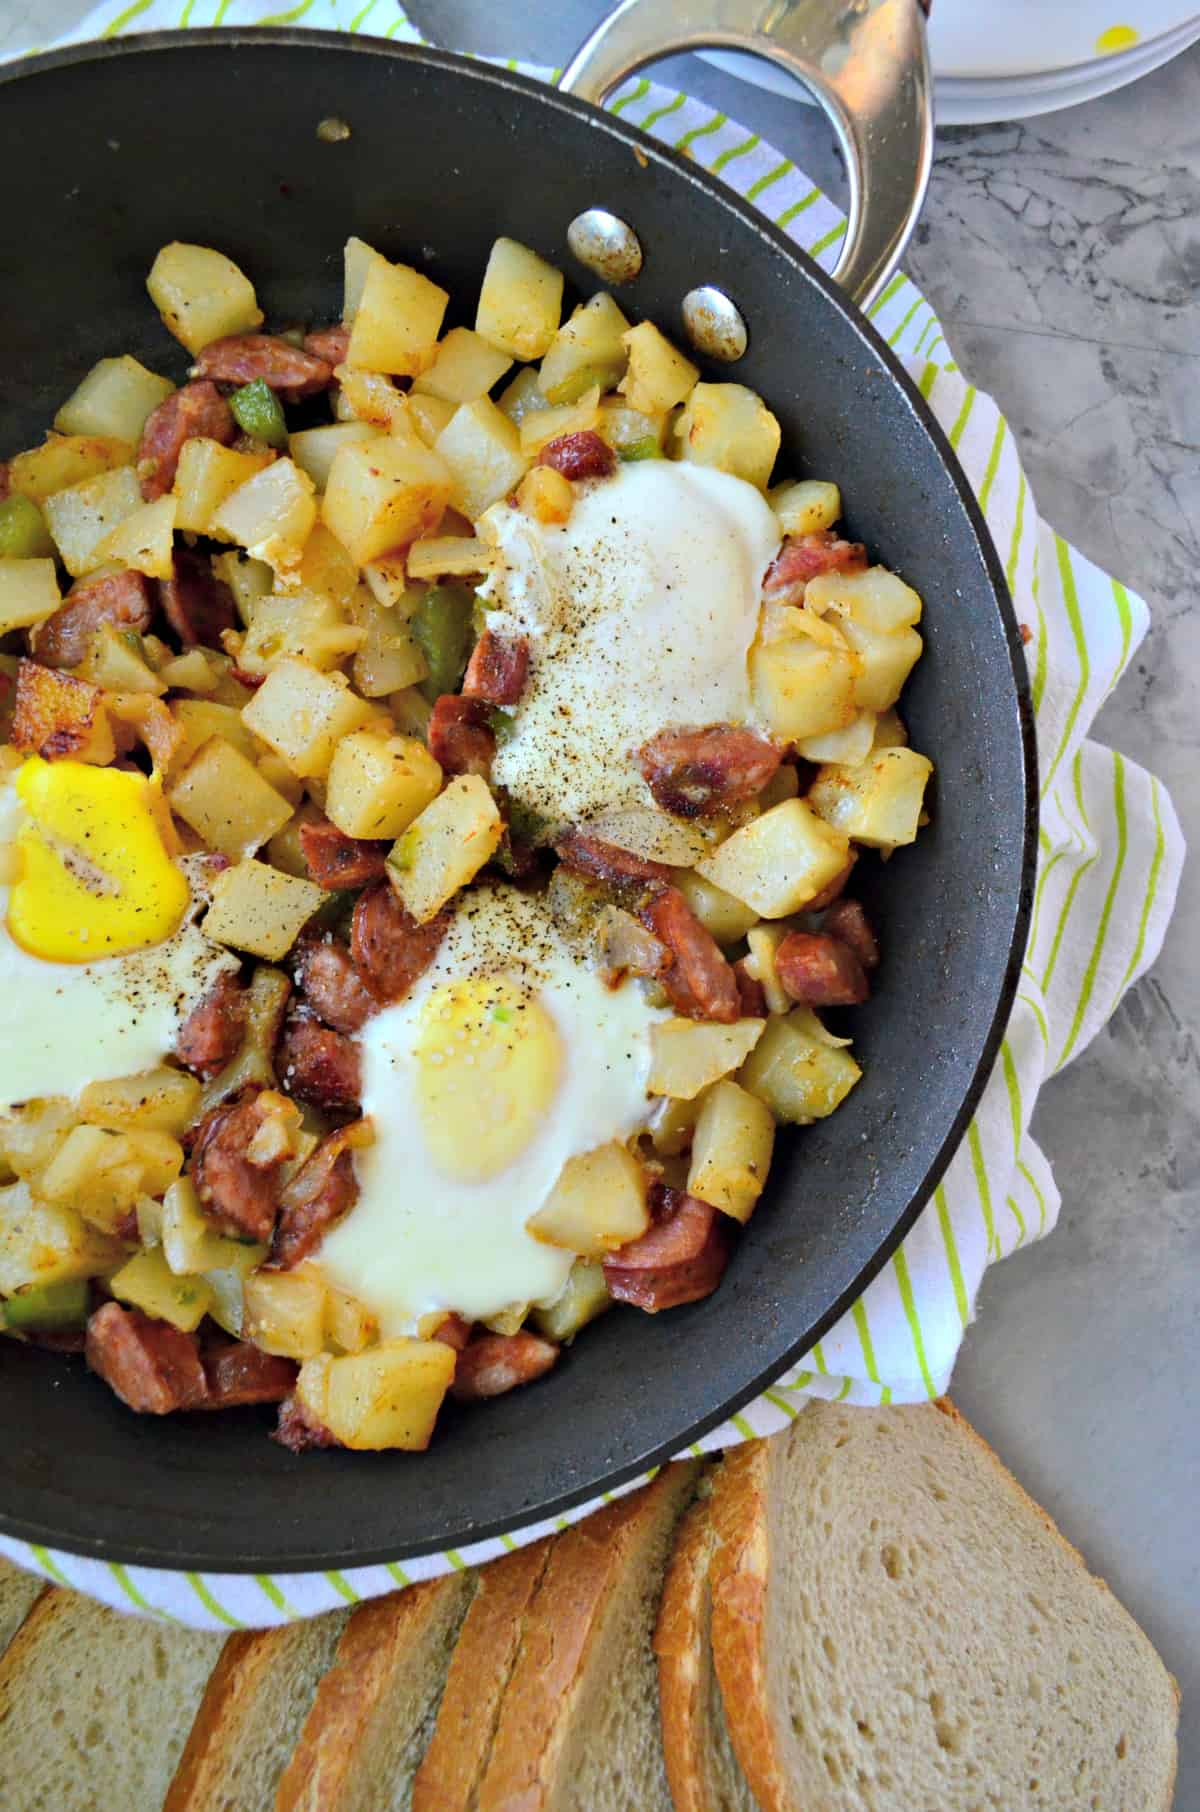 closeup of diced potatoes, sausage, over easy eggs, peppers, and pepper in skillet on counter.